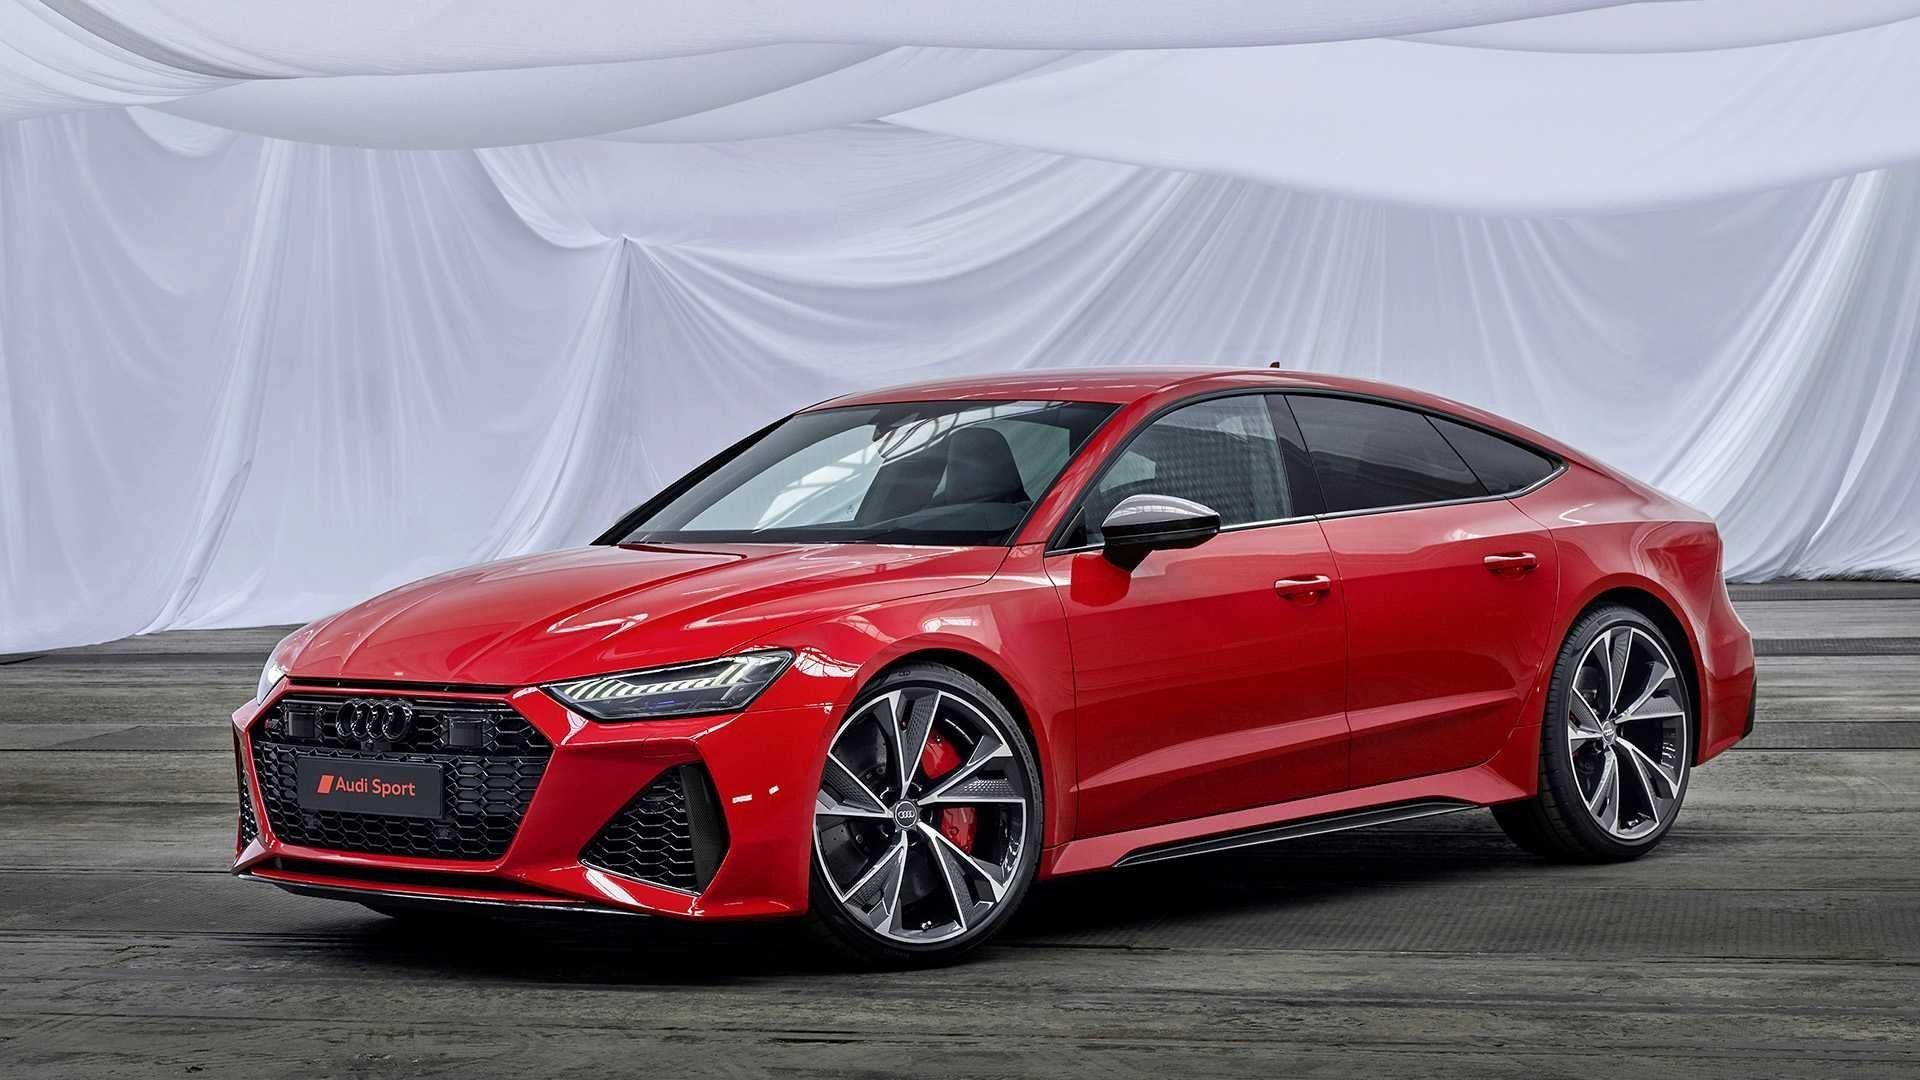 2020 Audi Q9 Ratings in 2020 (With images) Audi rs7